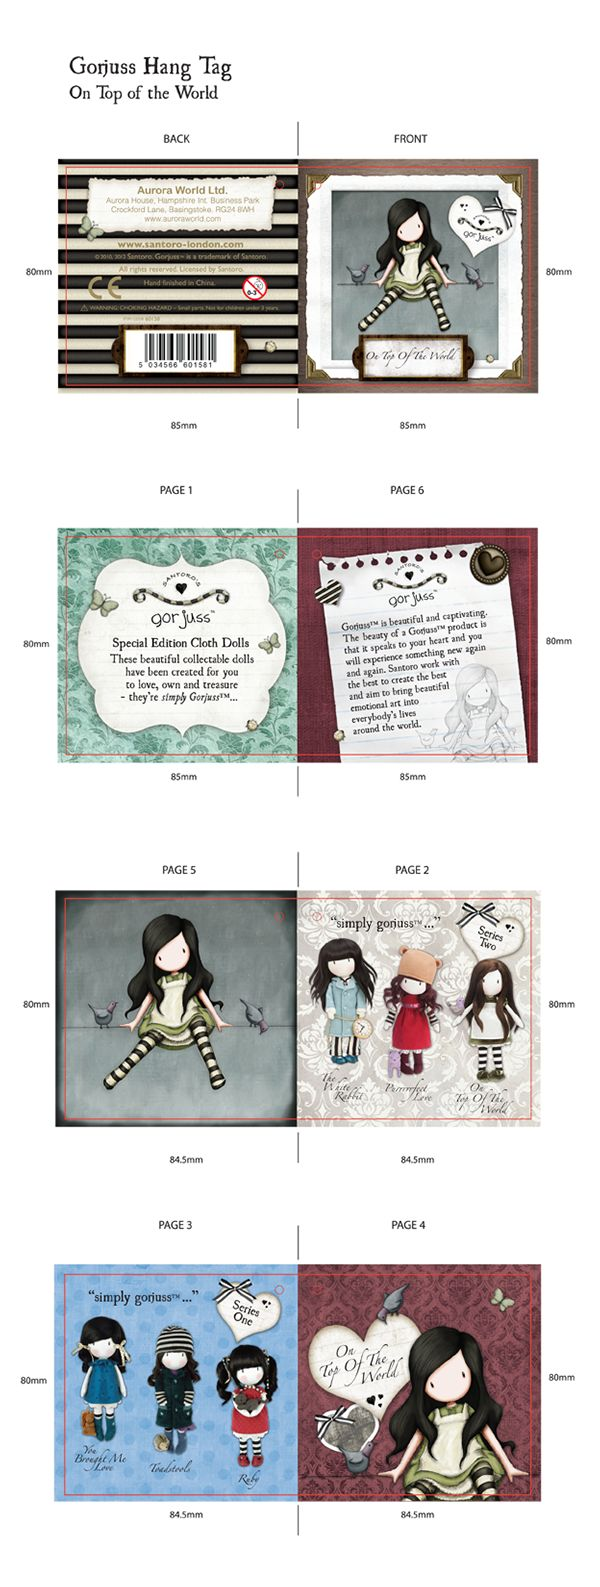 Final product Hang tag designs i created for the Santoro's Gorjuss range that were produced under license by Aurora World Ltd.